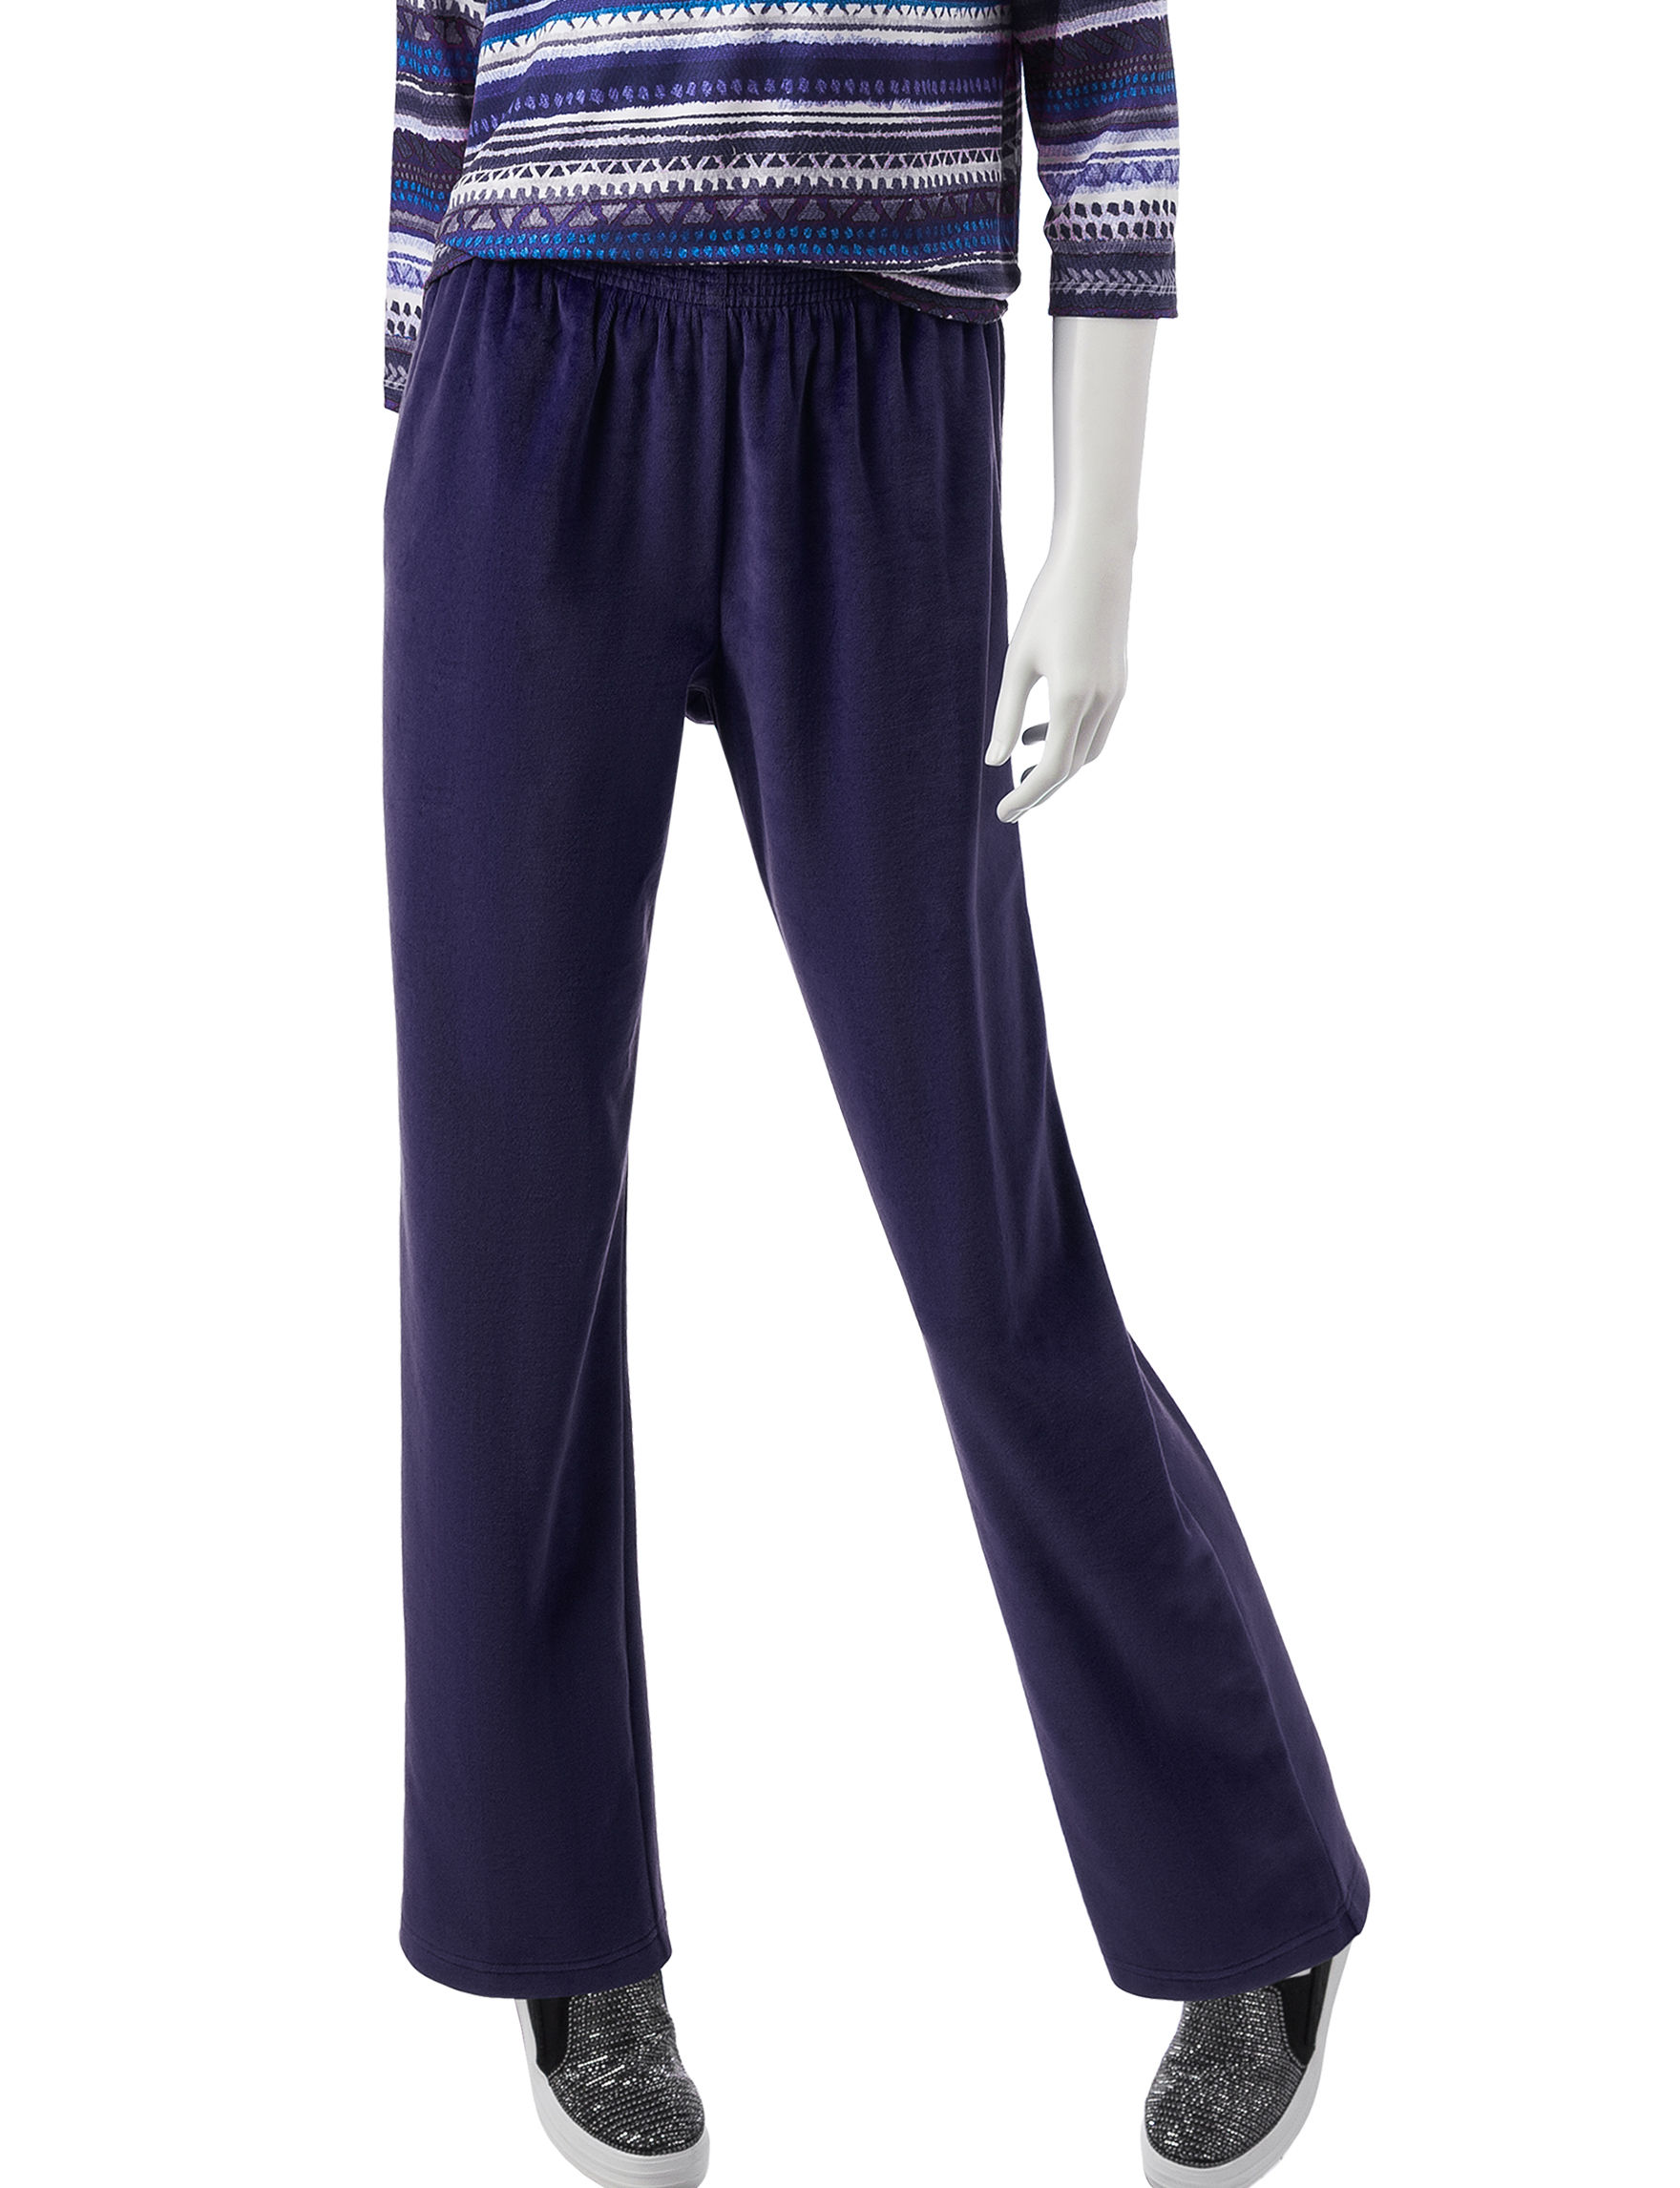 Alfred Dunner Soft Medium Length Pants Stage Stores Amethyst